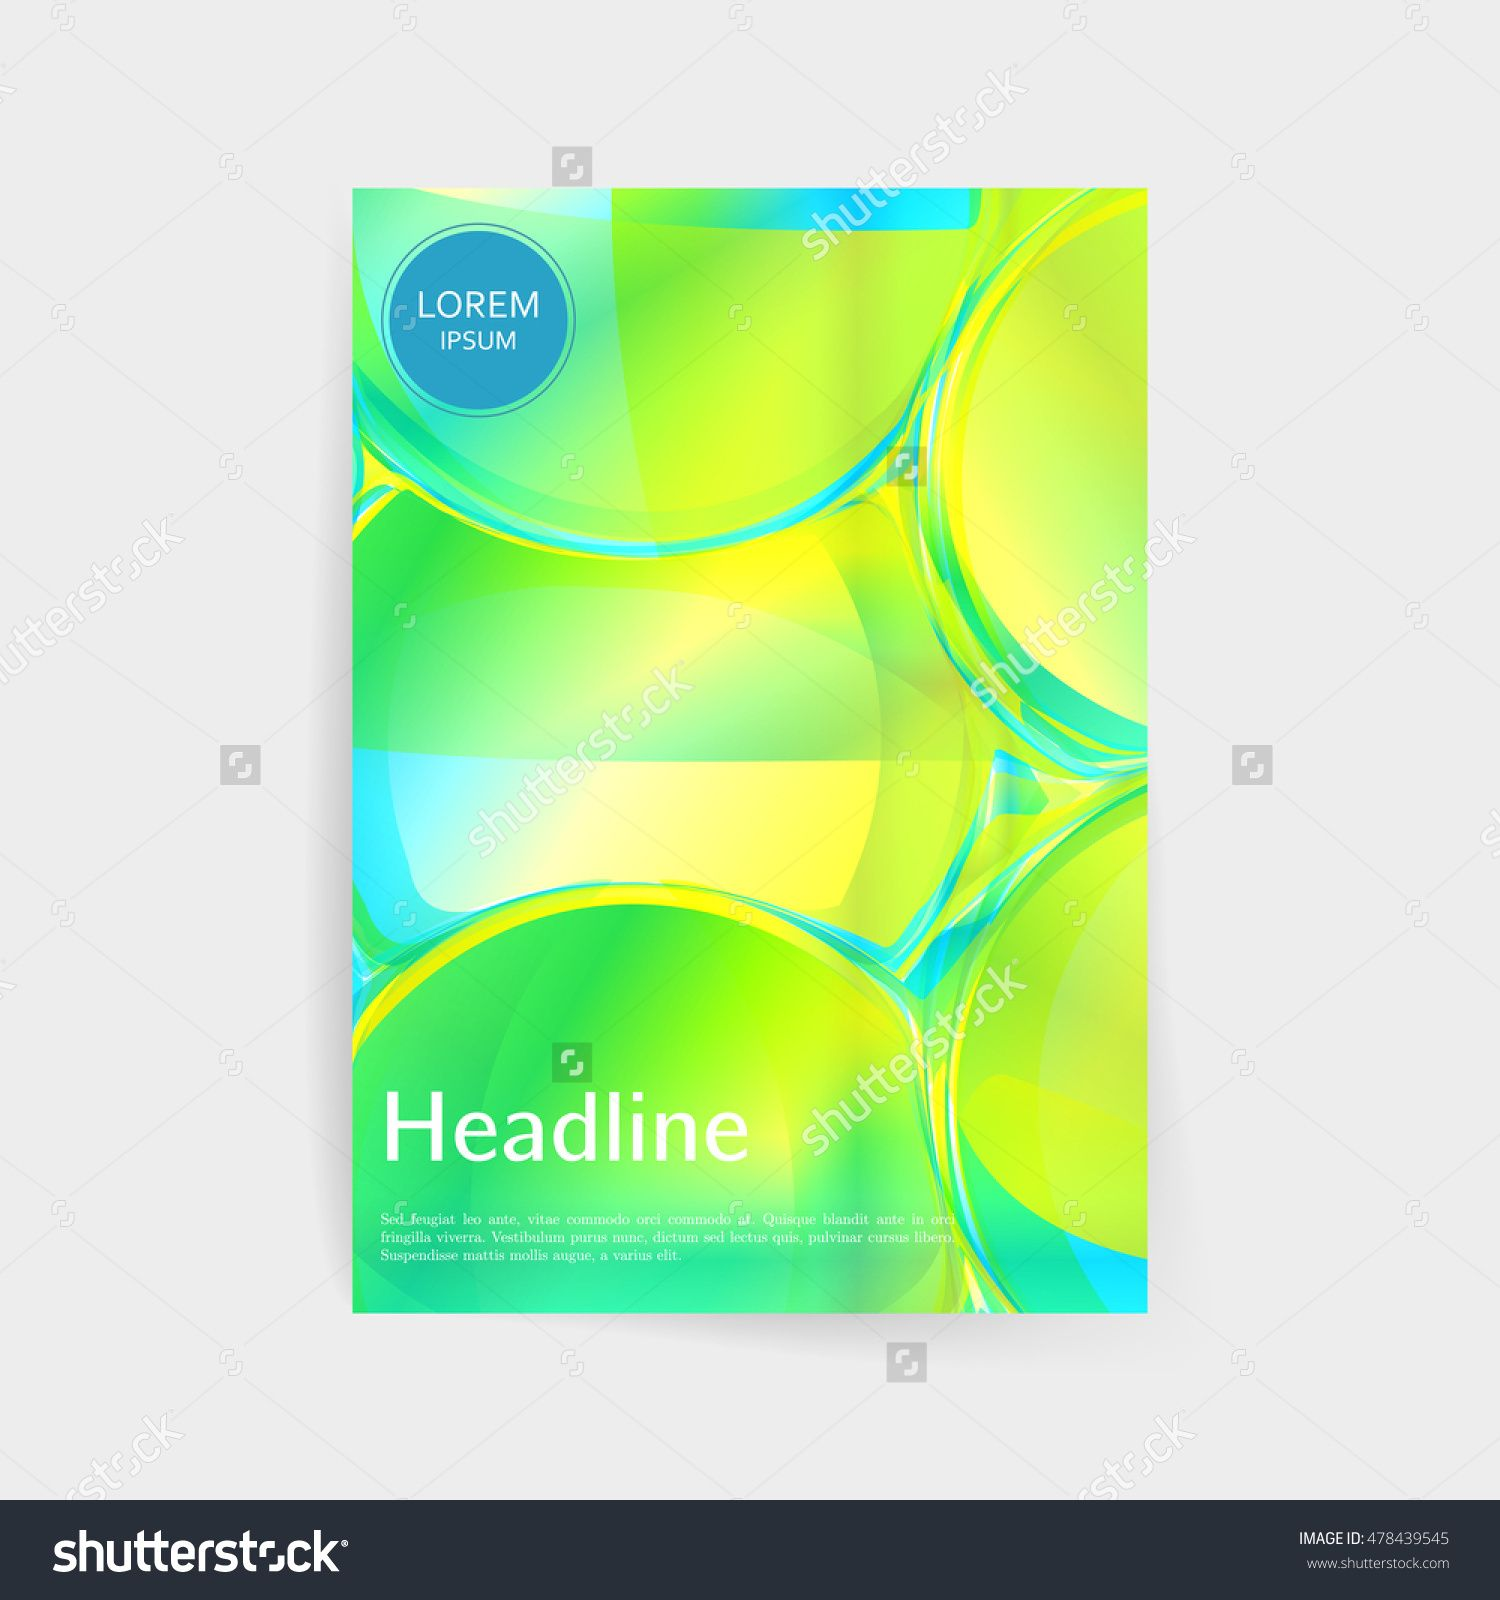 Luminous Glass Abstract Vector Design For Cover Poster Banner